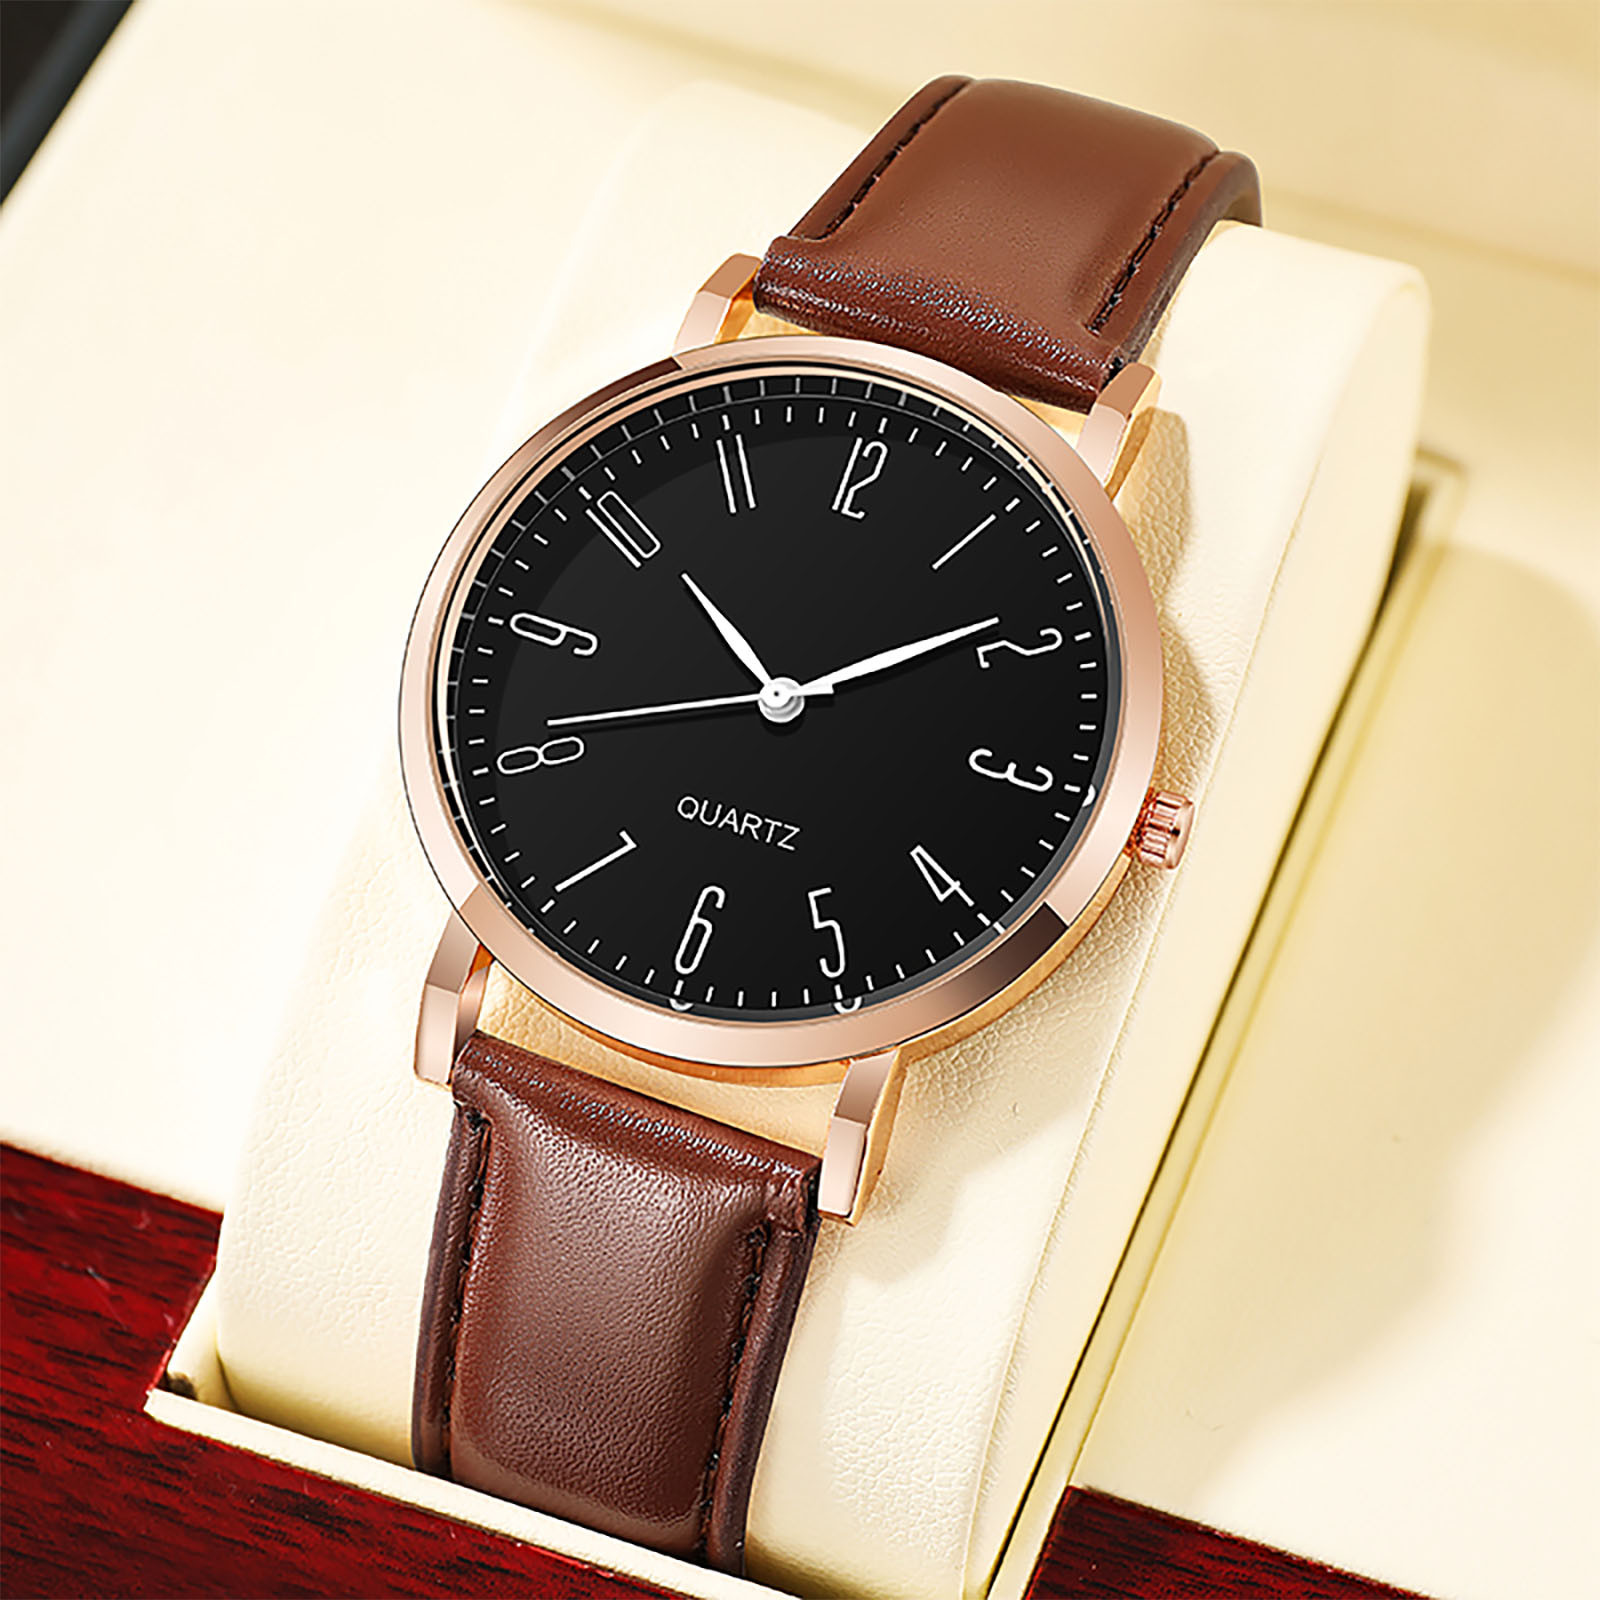 Casual Business Man Watches Round Alloy Dial Quartz Watch Faux Leather Band Quartz Analog Business Wrist Watch For Men#3